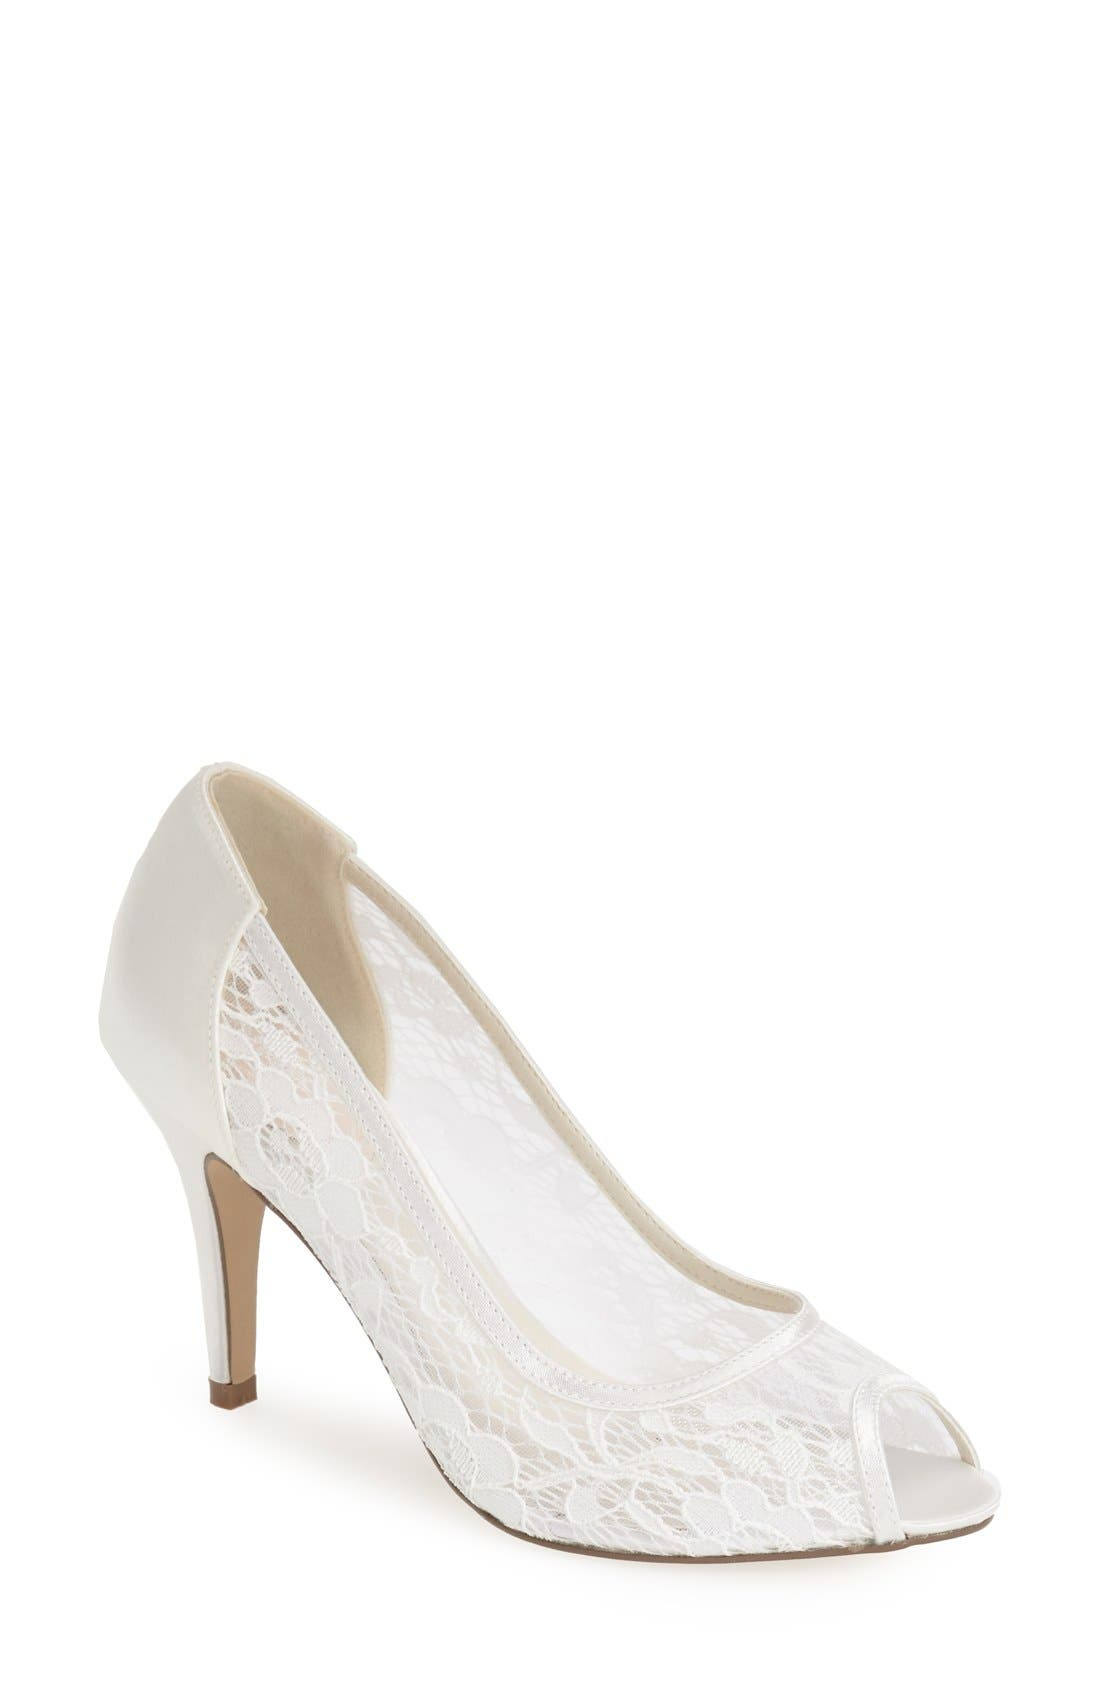 pink paradox london 'Scrumptious' Lace Peep Toe Sandal (Women)